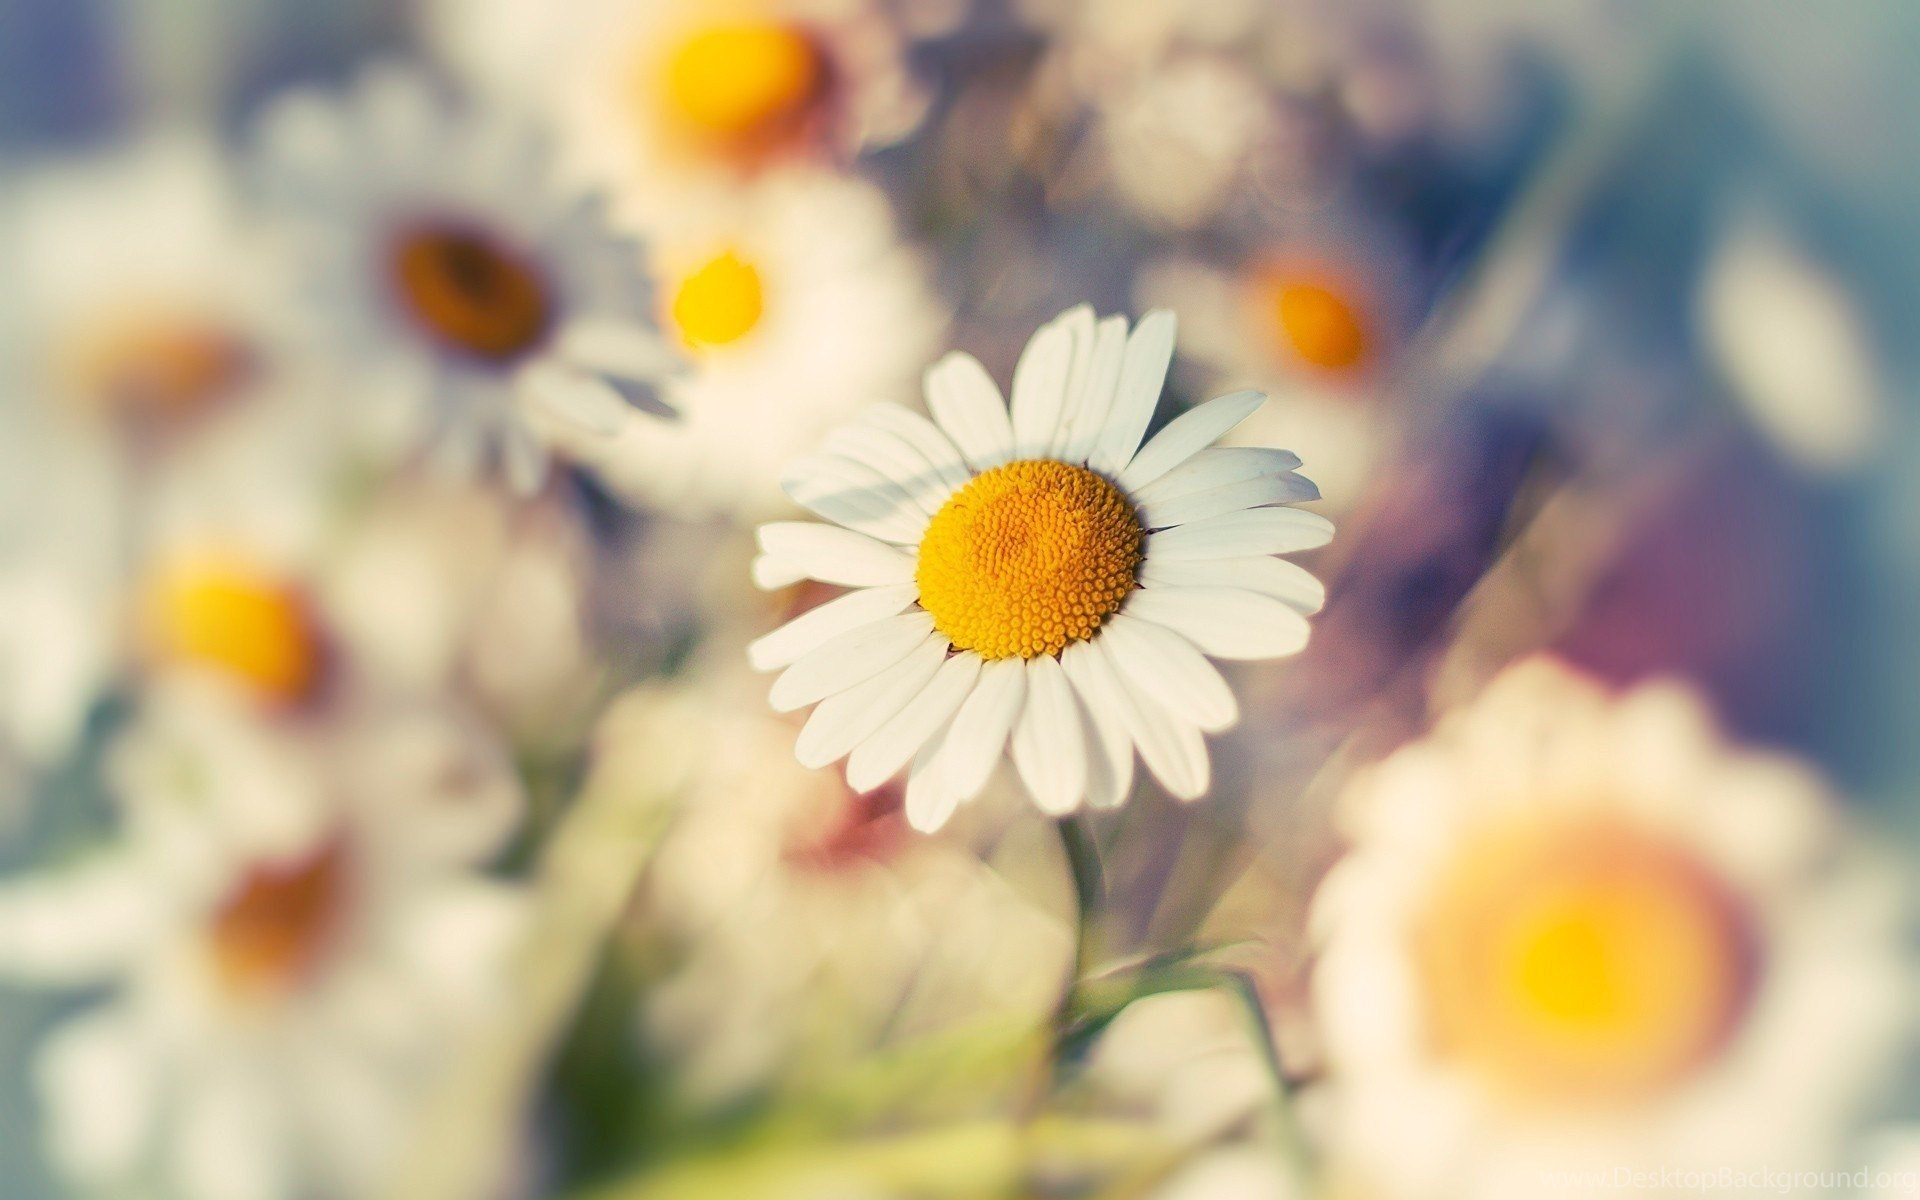 HD Vintage Daisy Flowers Wallpapers For Computer Full Size